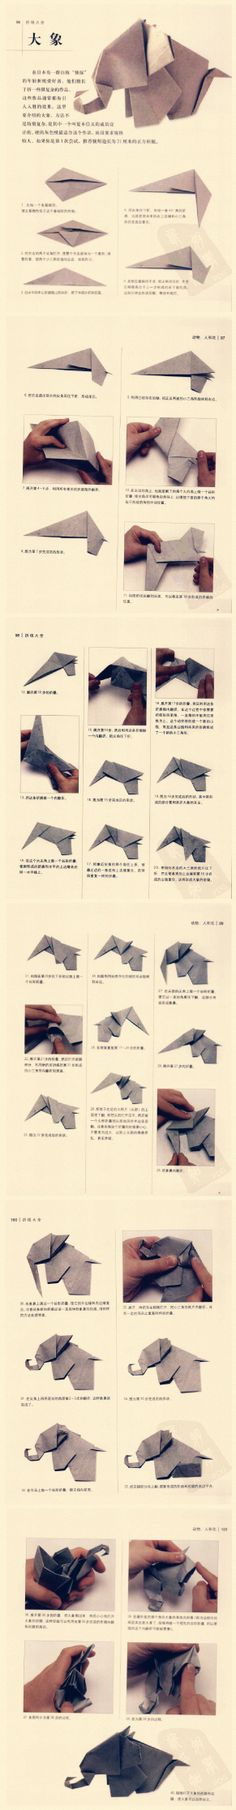 origami elephant-love this elephant, wish instructions were translated into…